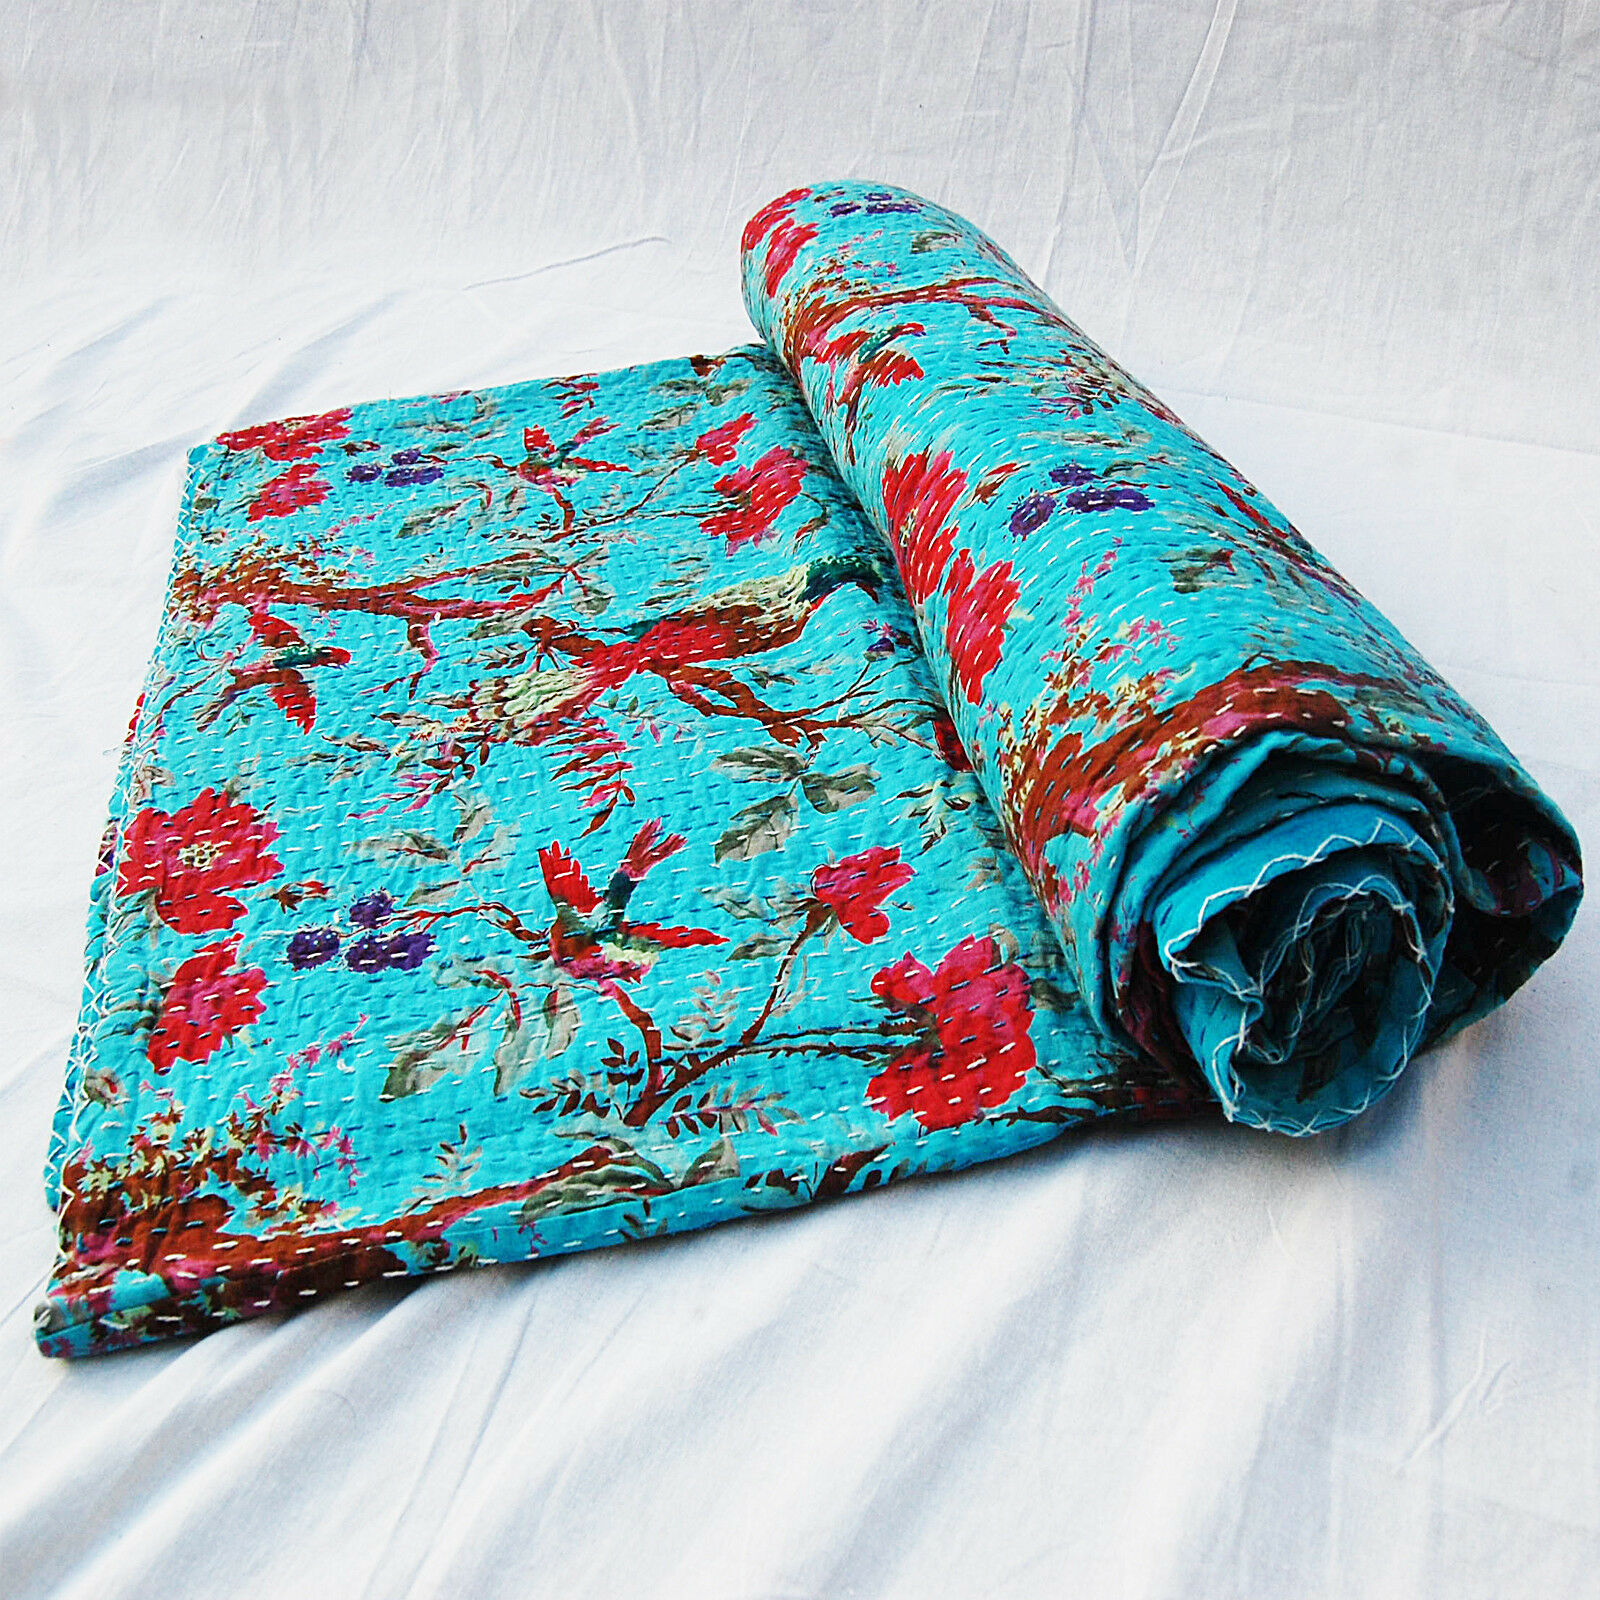 Turquoise Queen Bird Printed Kantha Floral Throws Indian Hand Stitched Gudari